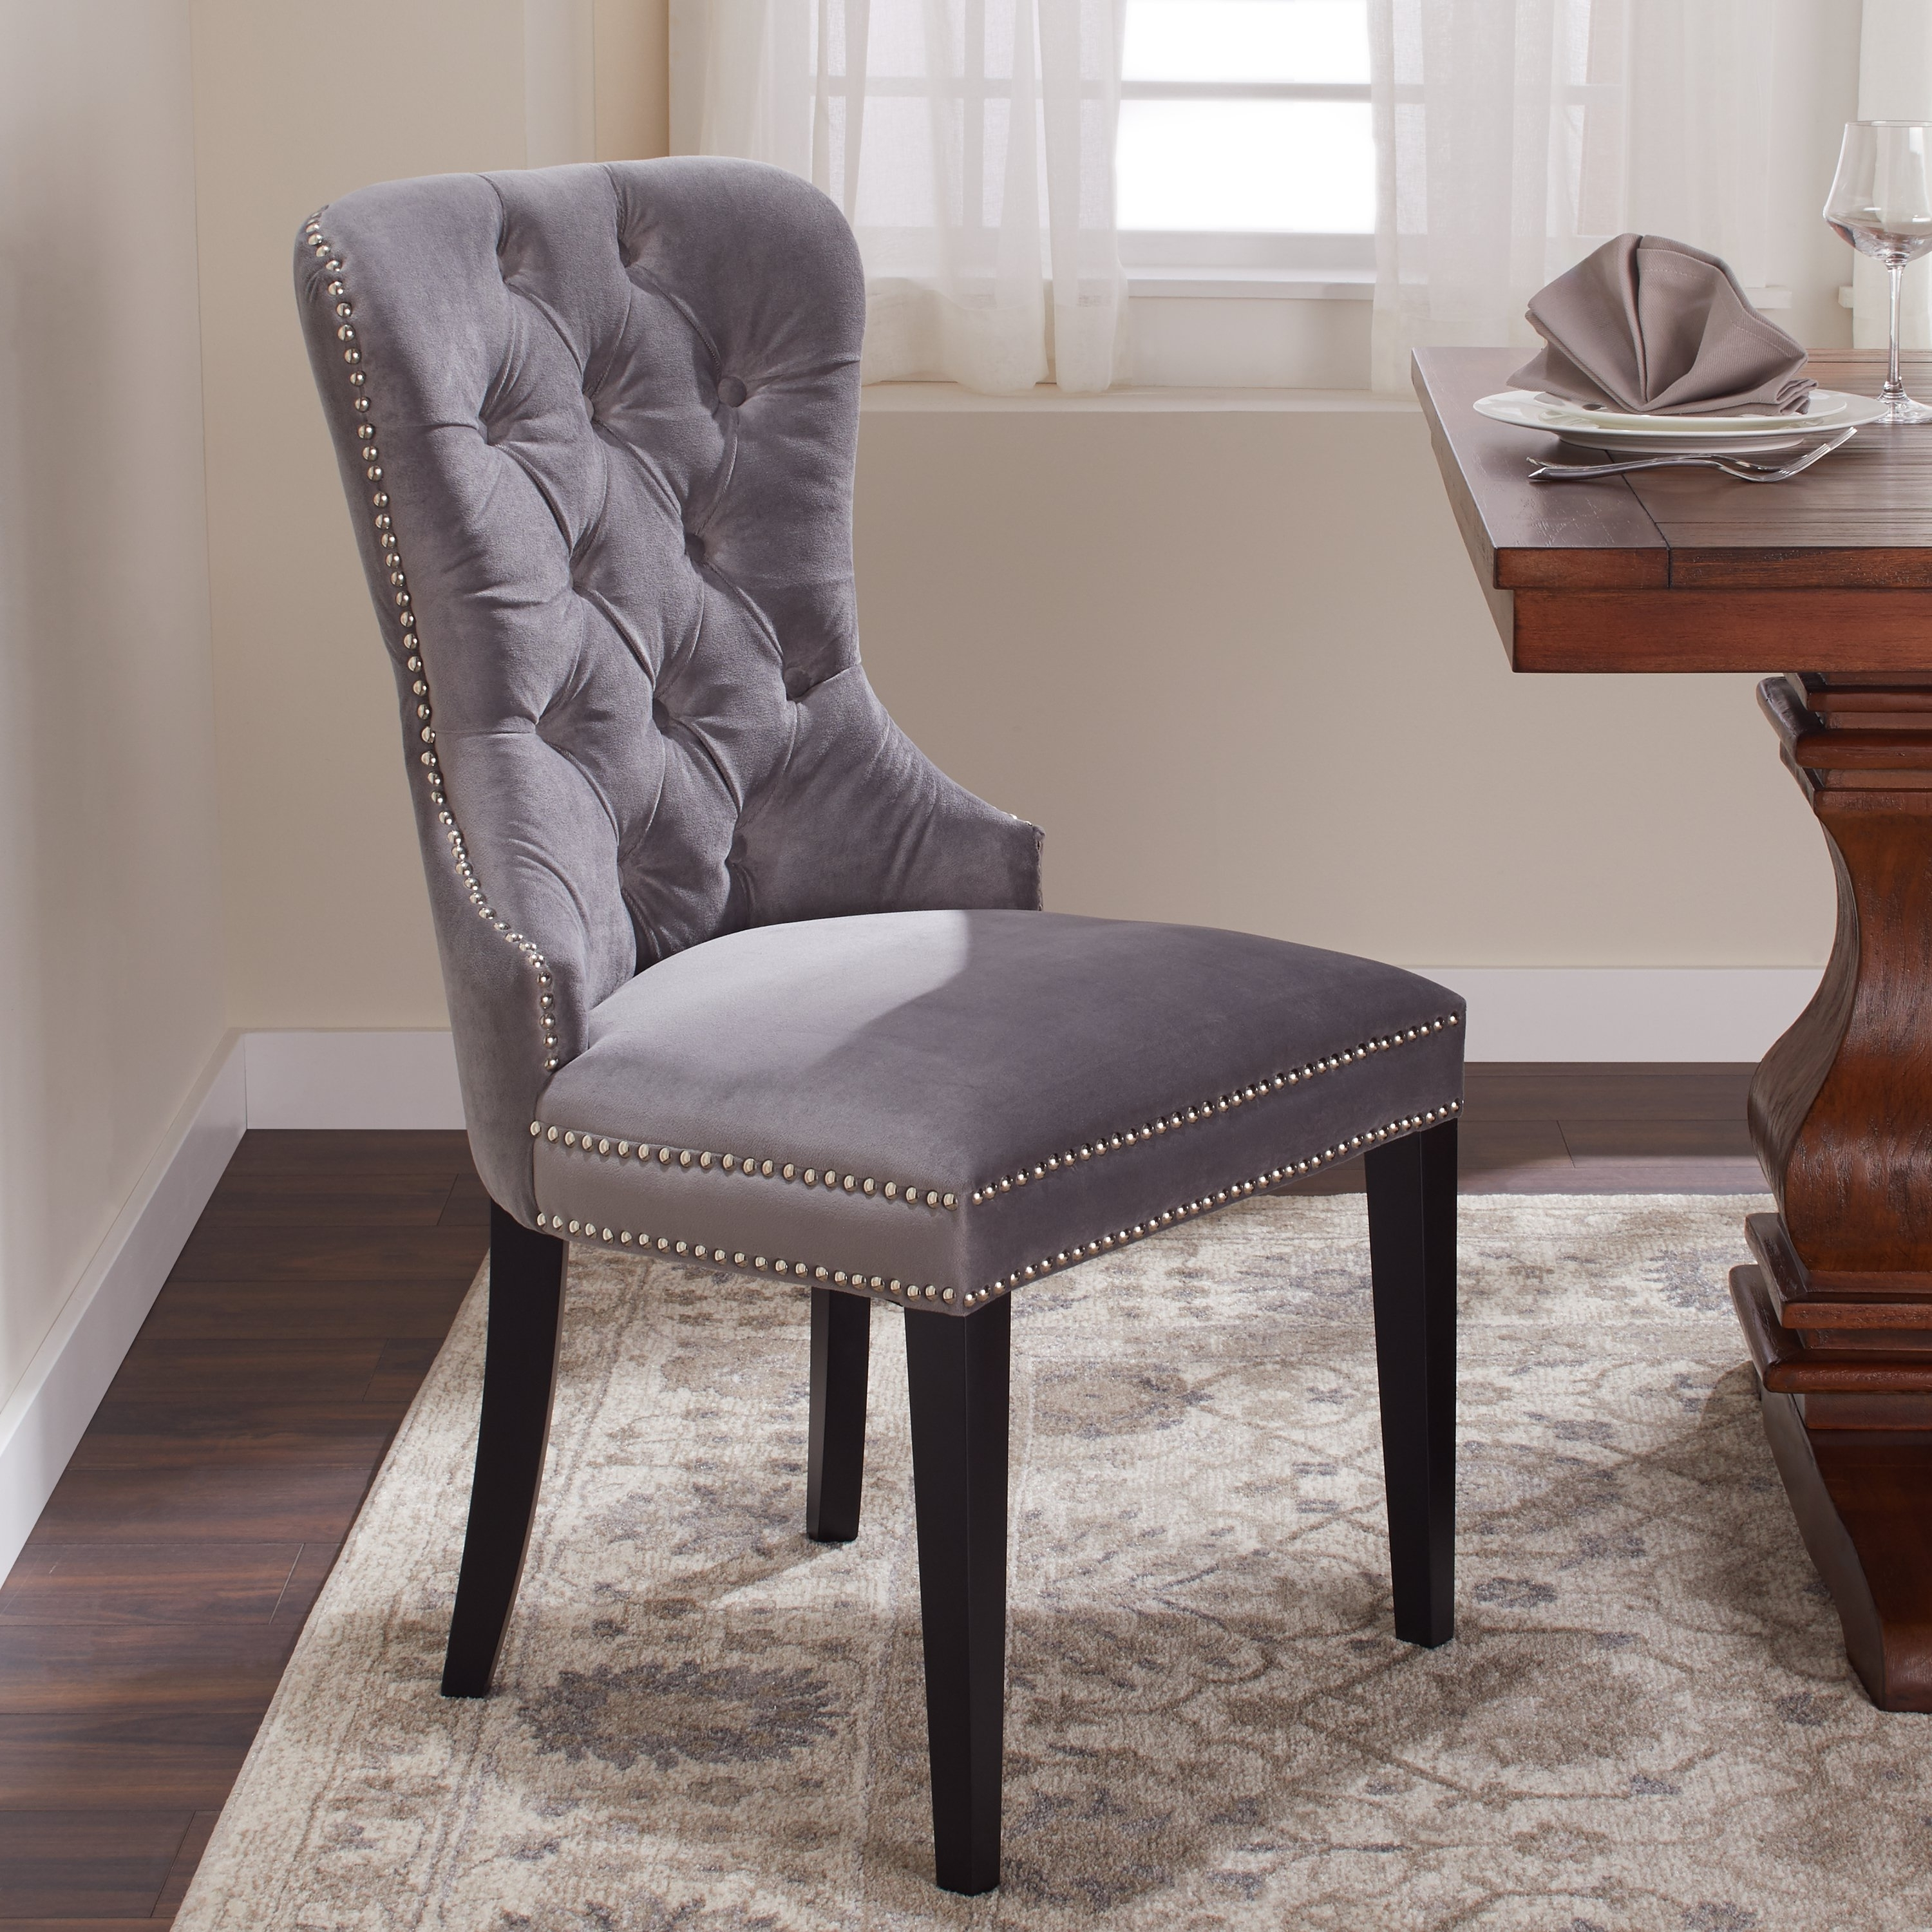 Pilo Grey Side Chairs Pertaining To 2018 Shop Abbyson Versailles Grey Tufted Dining Chair – On Sale – Free (View 14 of 20)